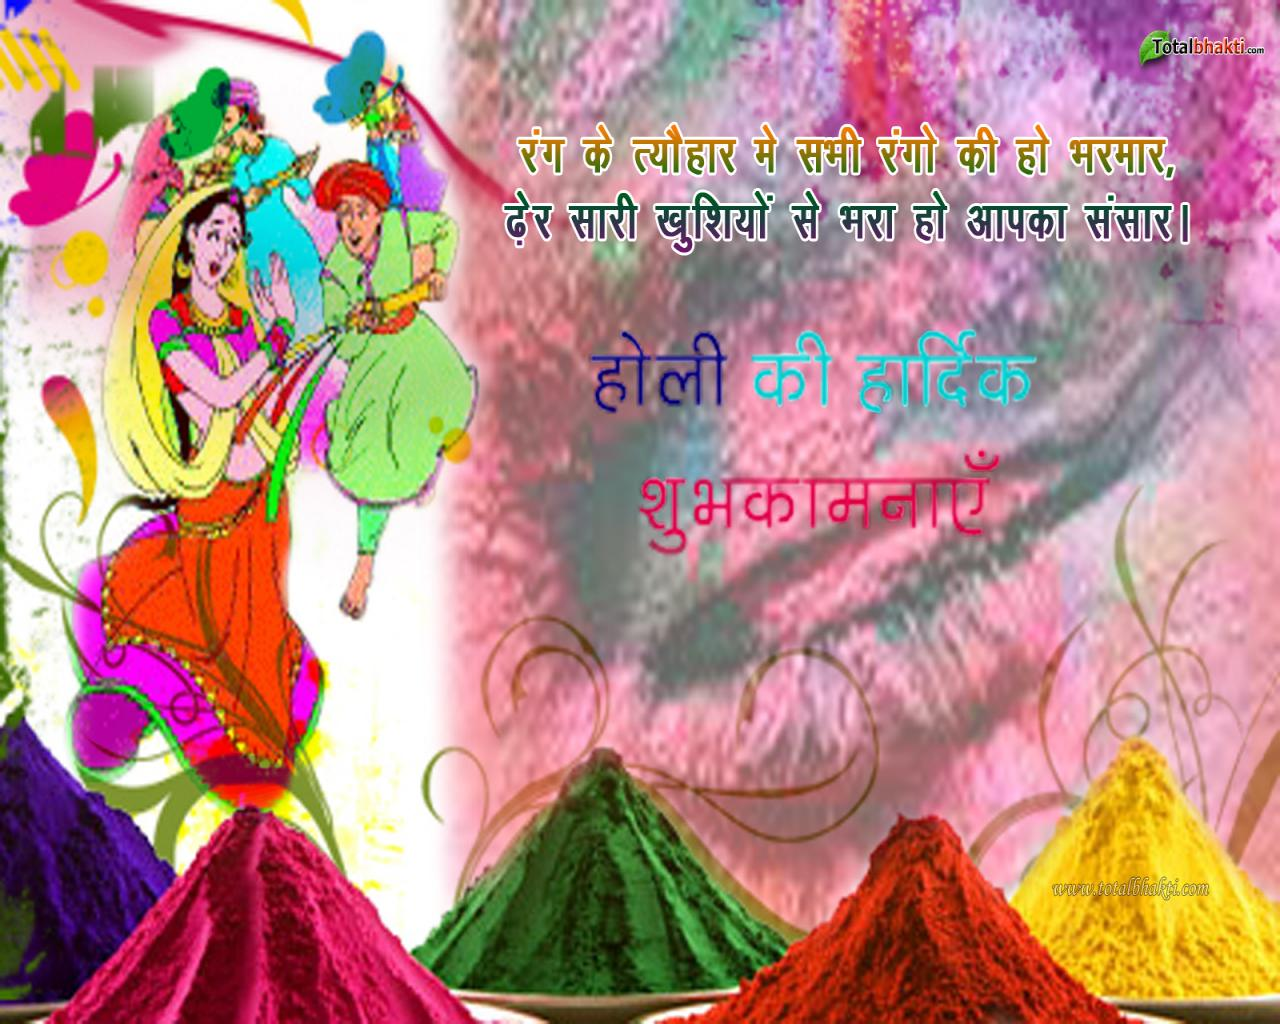 latest happy holi pictures holi images here we presented the numerous collections of holi pictures holi photo colours faces 2016 for you to send to your beloved on this prosperous occasion